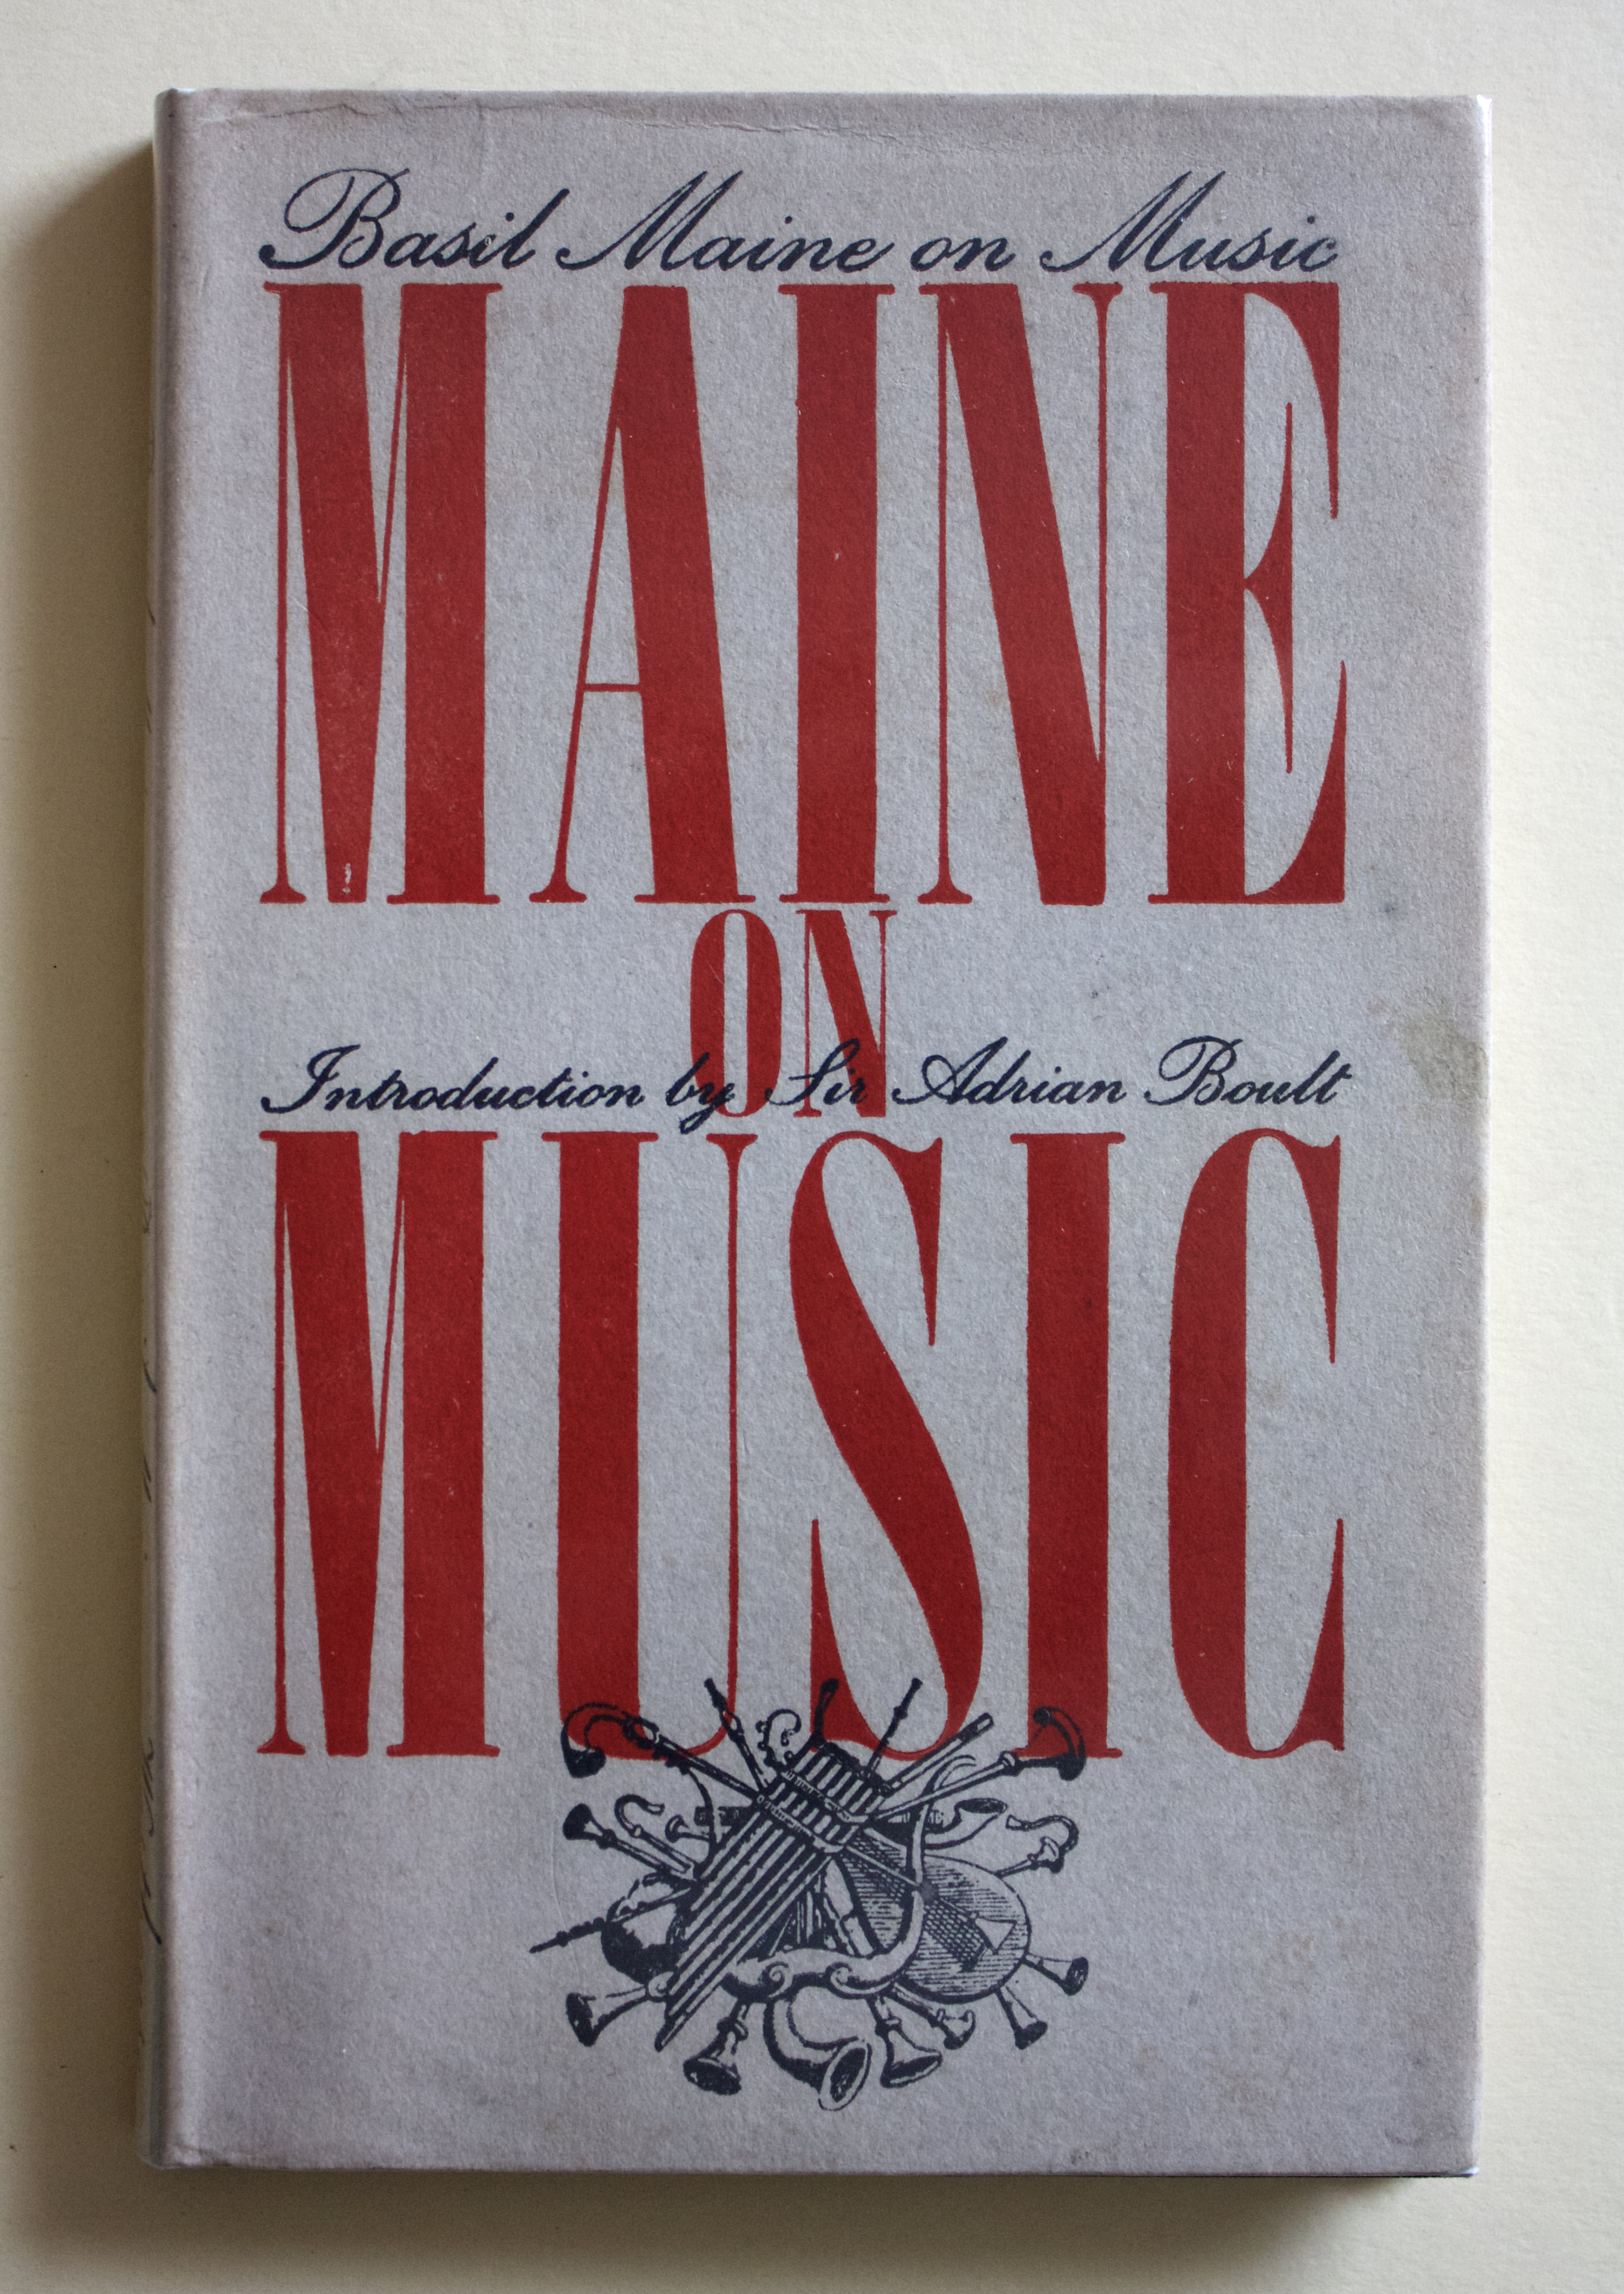 "Copy of ""Maine on Music: Basil Maine on Music"" by Basil Maine (John Westhouse, 1945)"